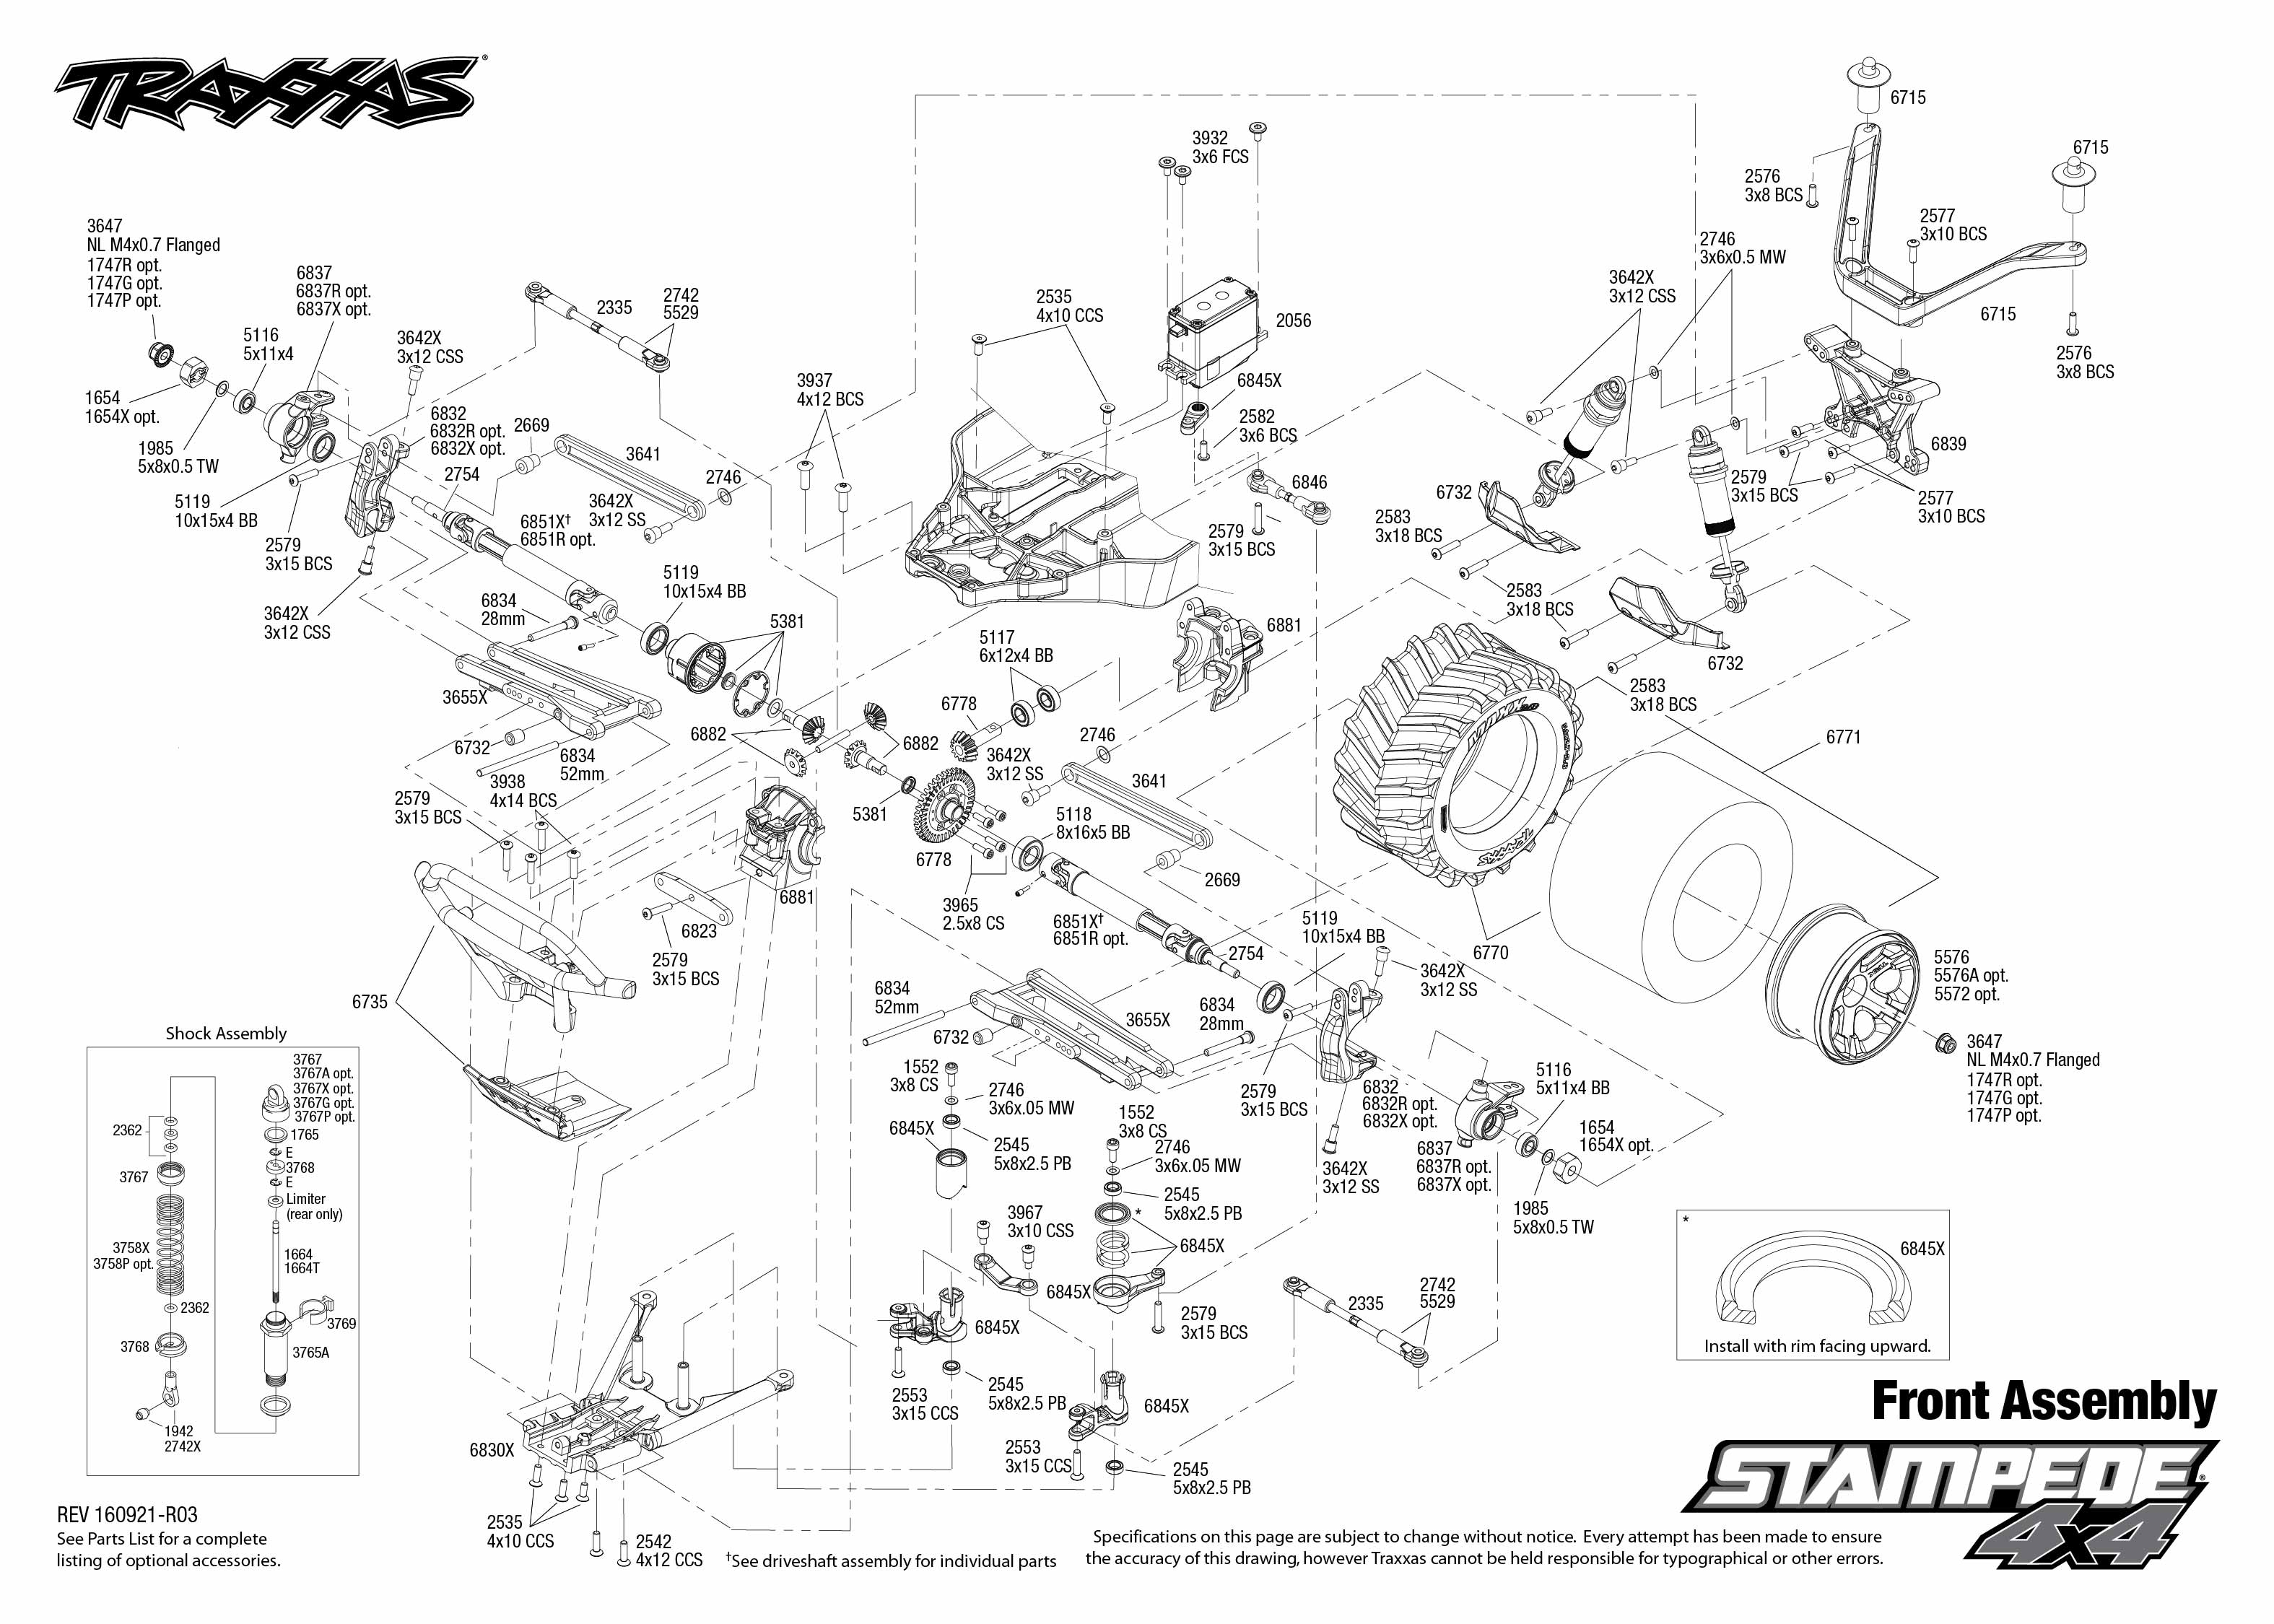 Exploded view: Traxxas Stampede 1:10 4WD TQ RTR - Front part